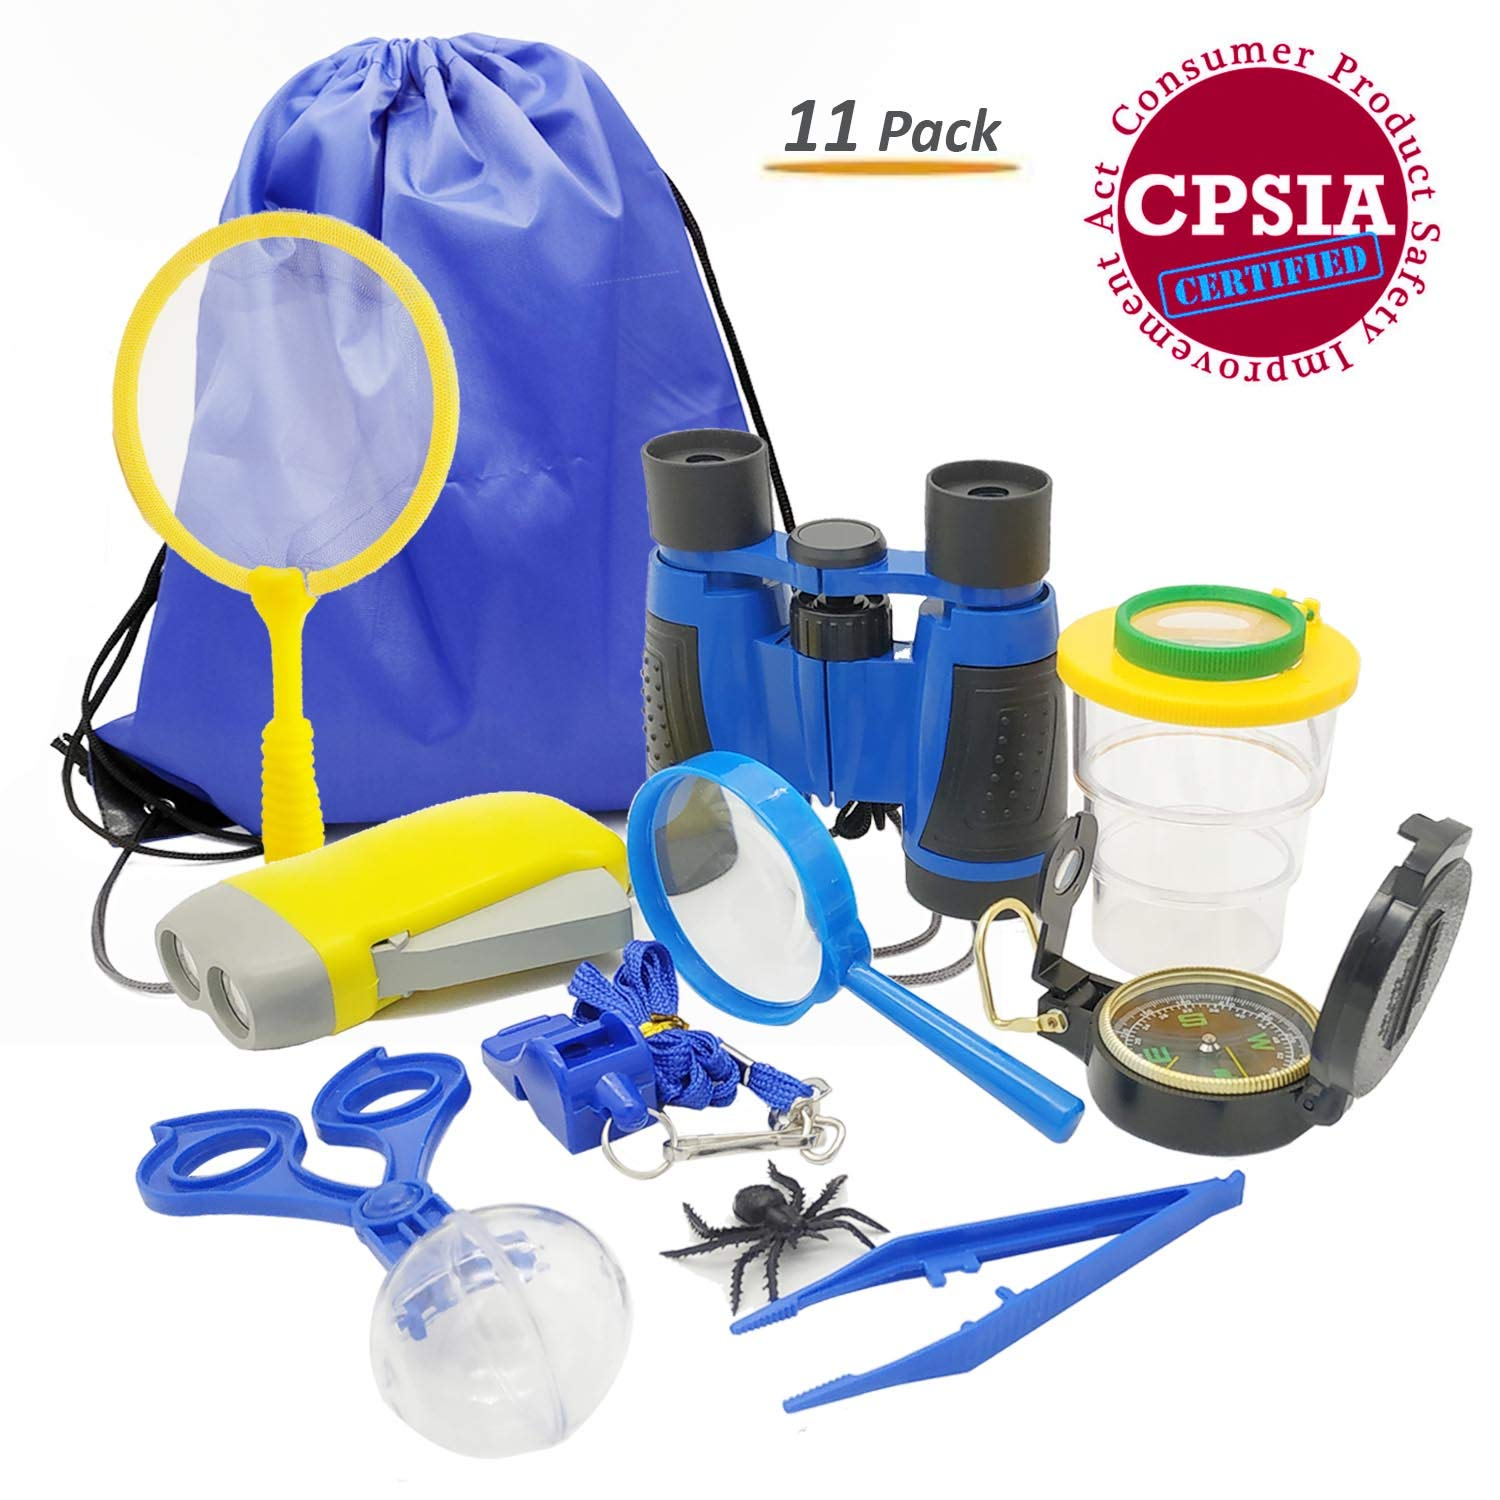 Kids Adventure Kit, 11-in-1 Outdoor Exploration Gift Set for Camping, Hiking and Pretend Play - Including Binoculars Compass Flashlight Bug Catcher Container Whistle Butterfly Net Magnifier Backpack